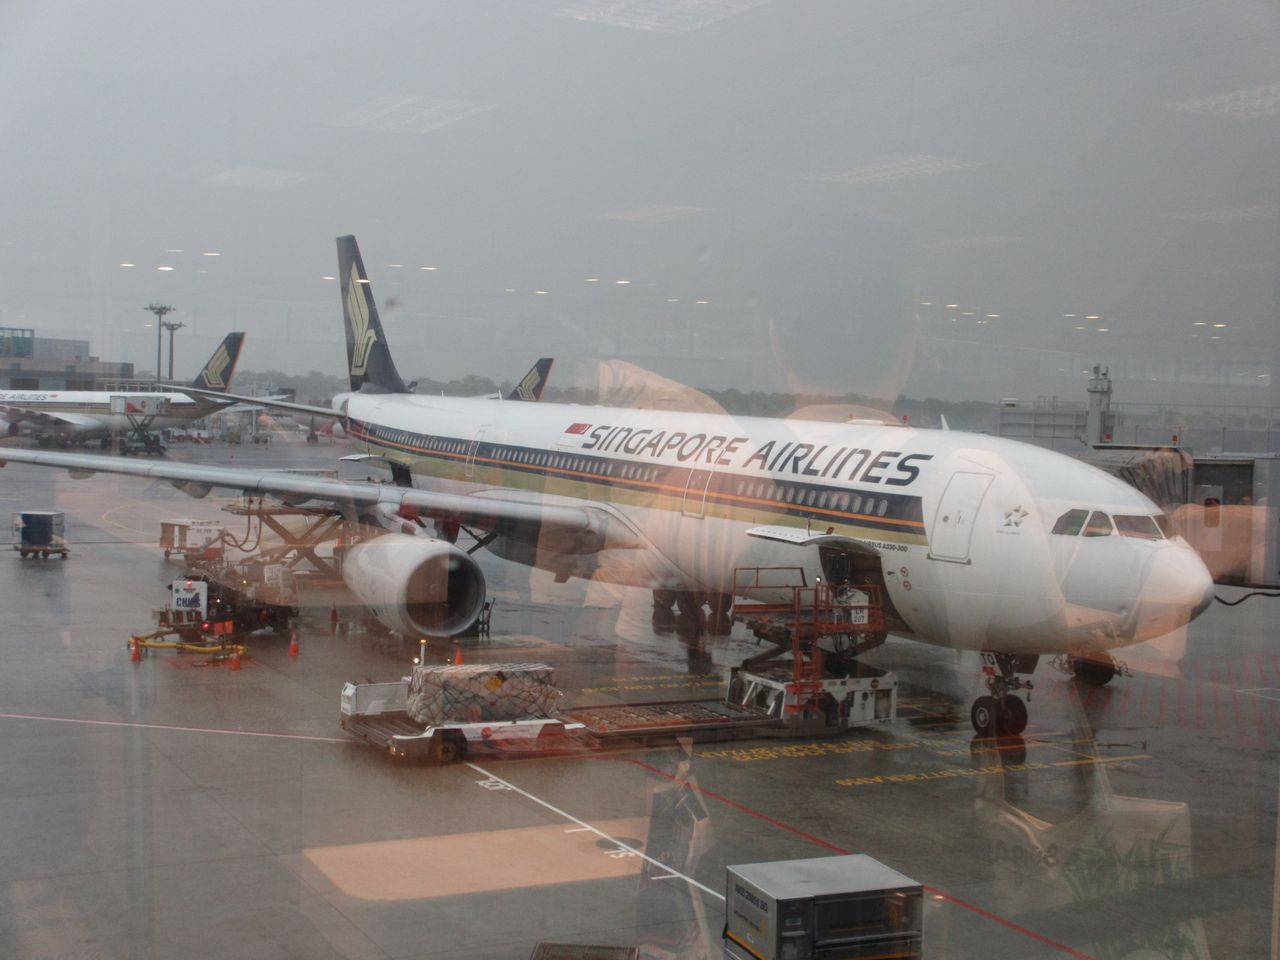 Review of Singapore Airlines flight from Singapore to ...